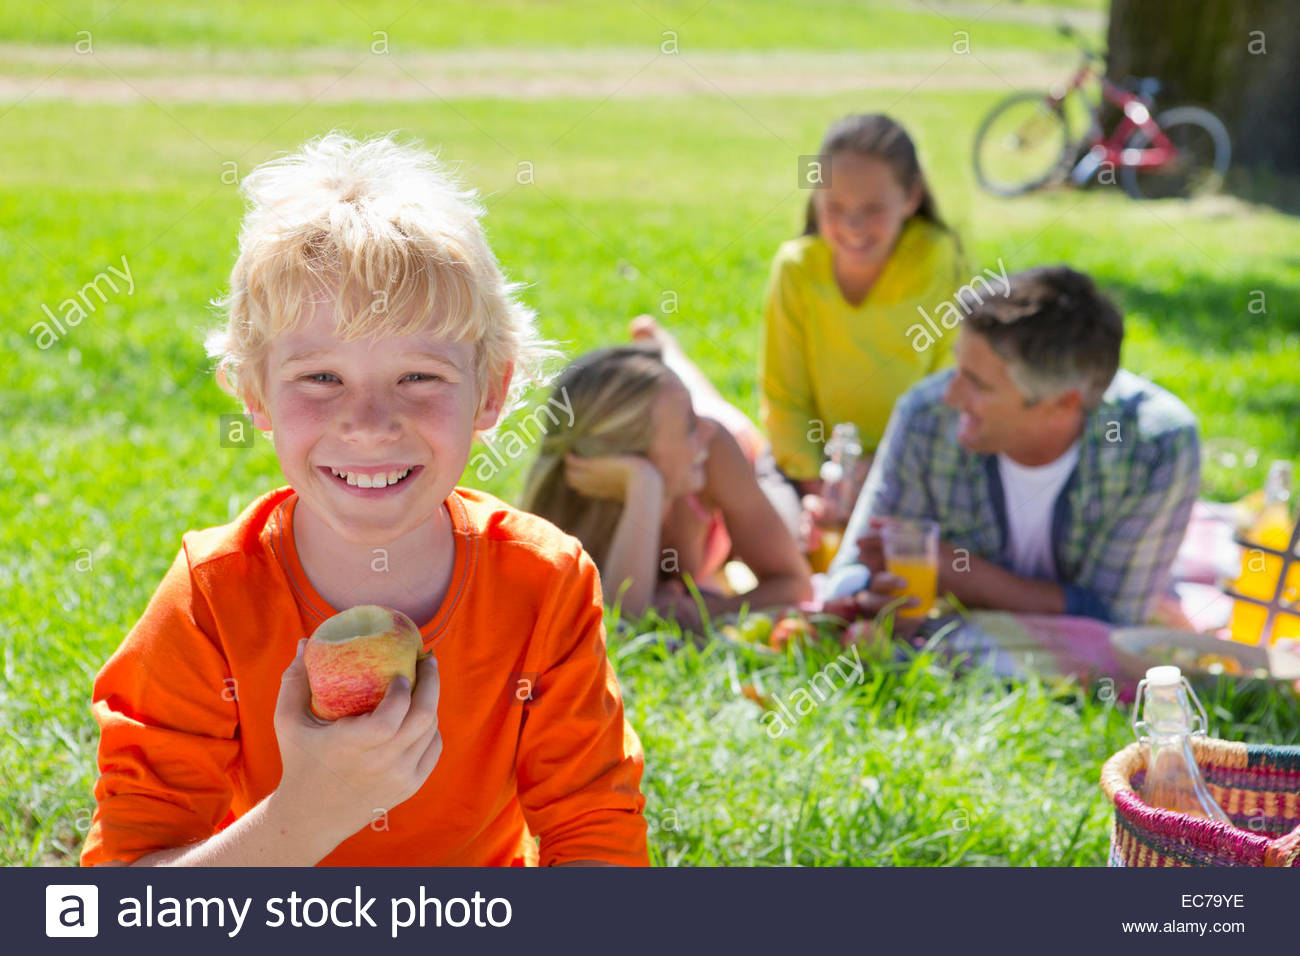 Close-up of boy with apple with family having a picnic in countryside, - Stock Image